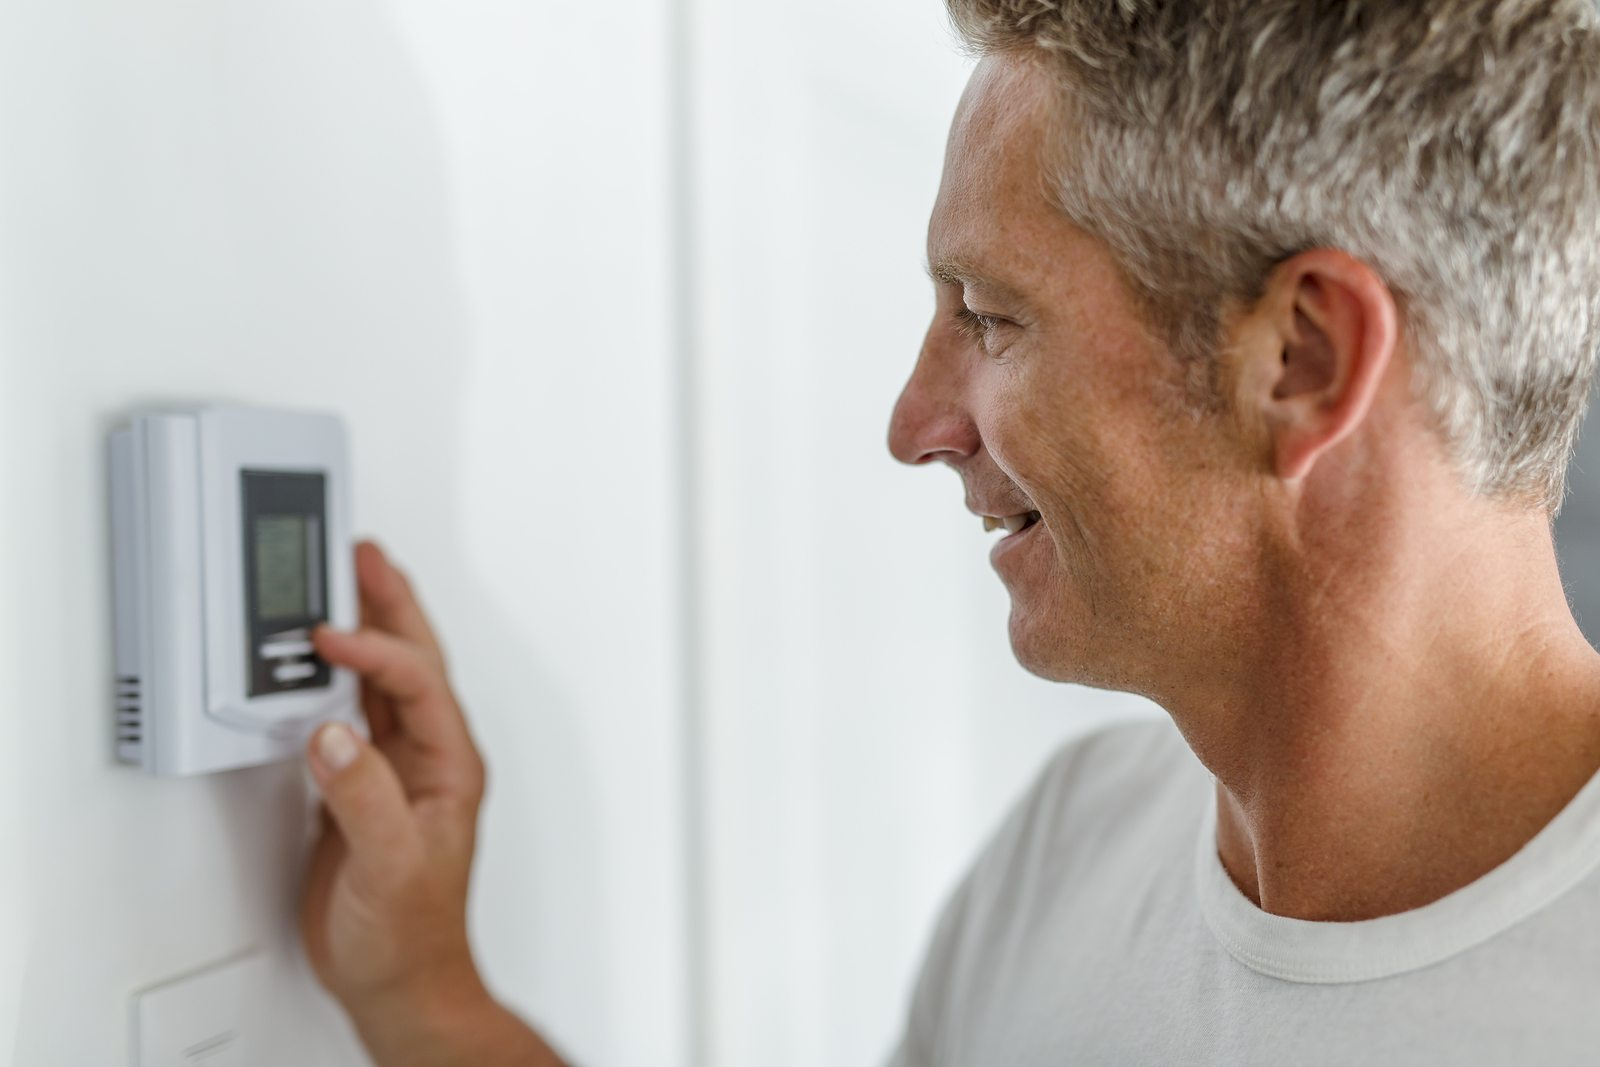 By implementing energy efficient habits, you can save on home energy costs